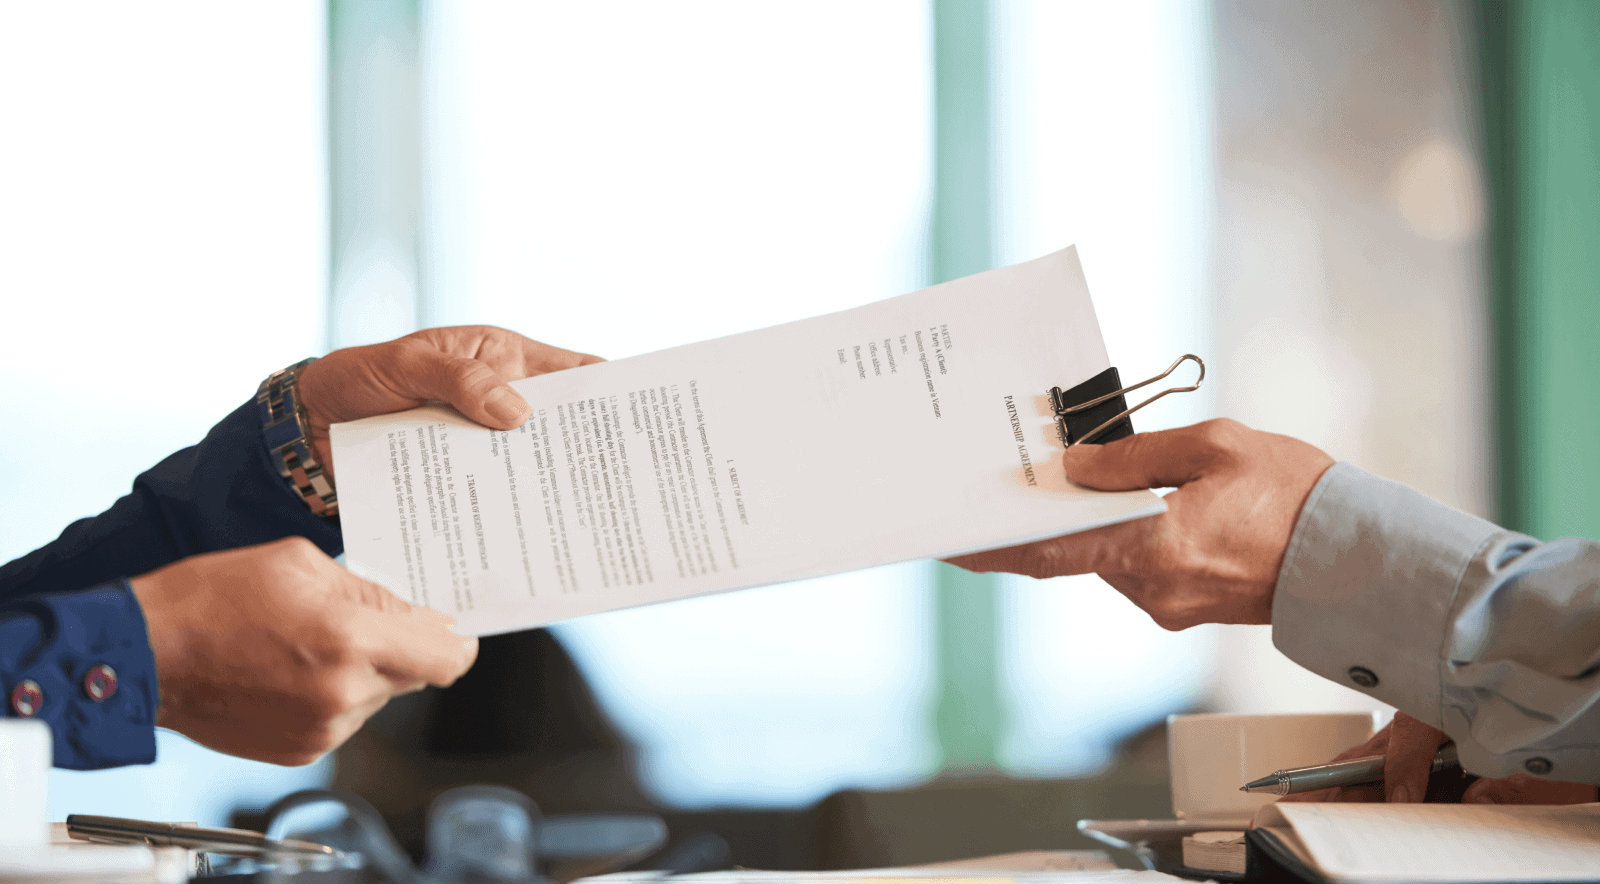 Define the role of the LLC organizer in the operating agreement